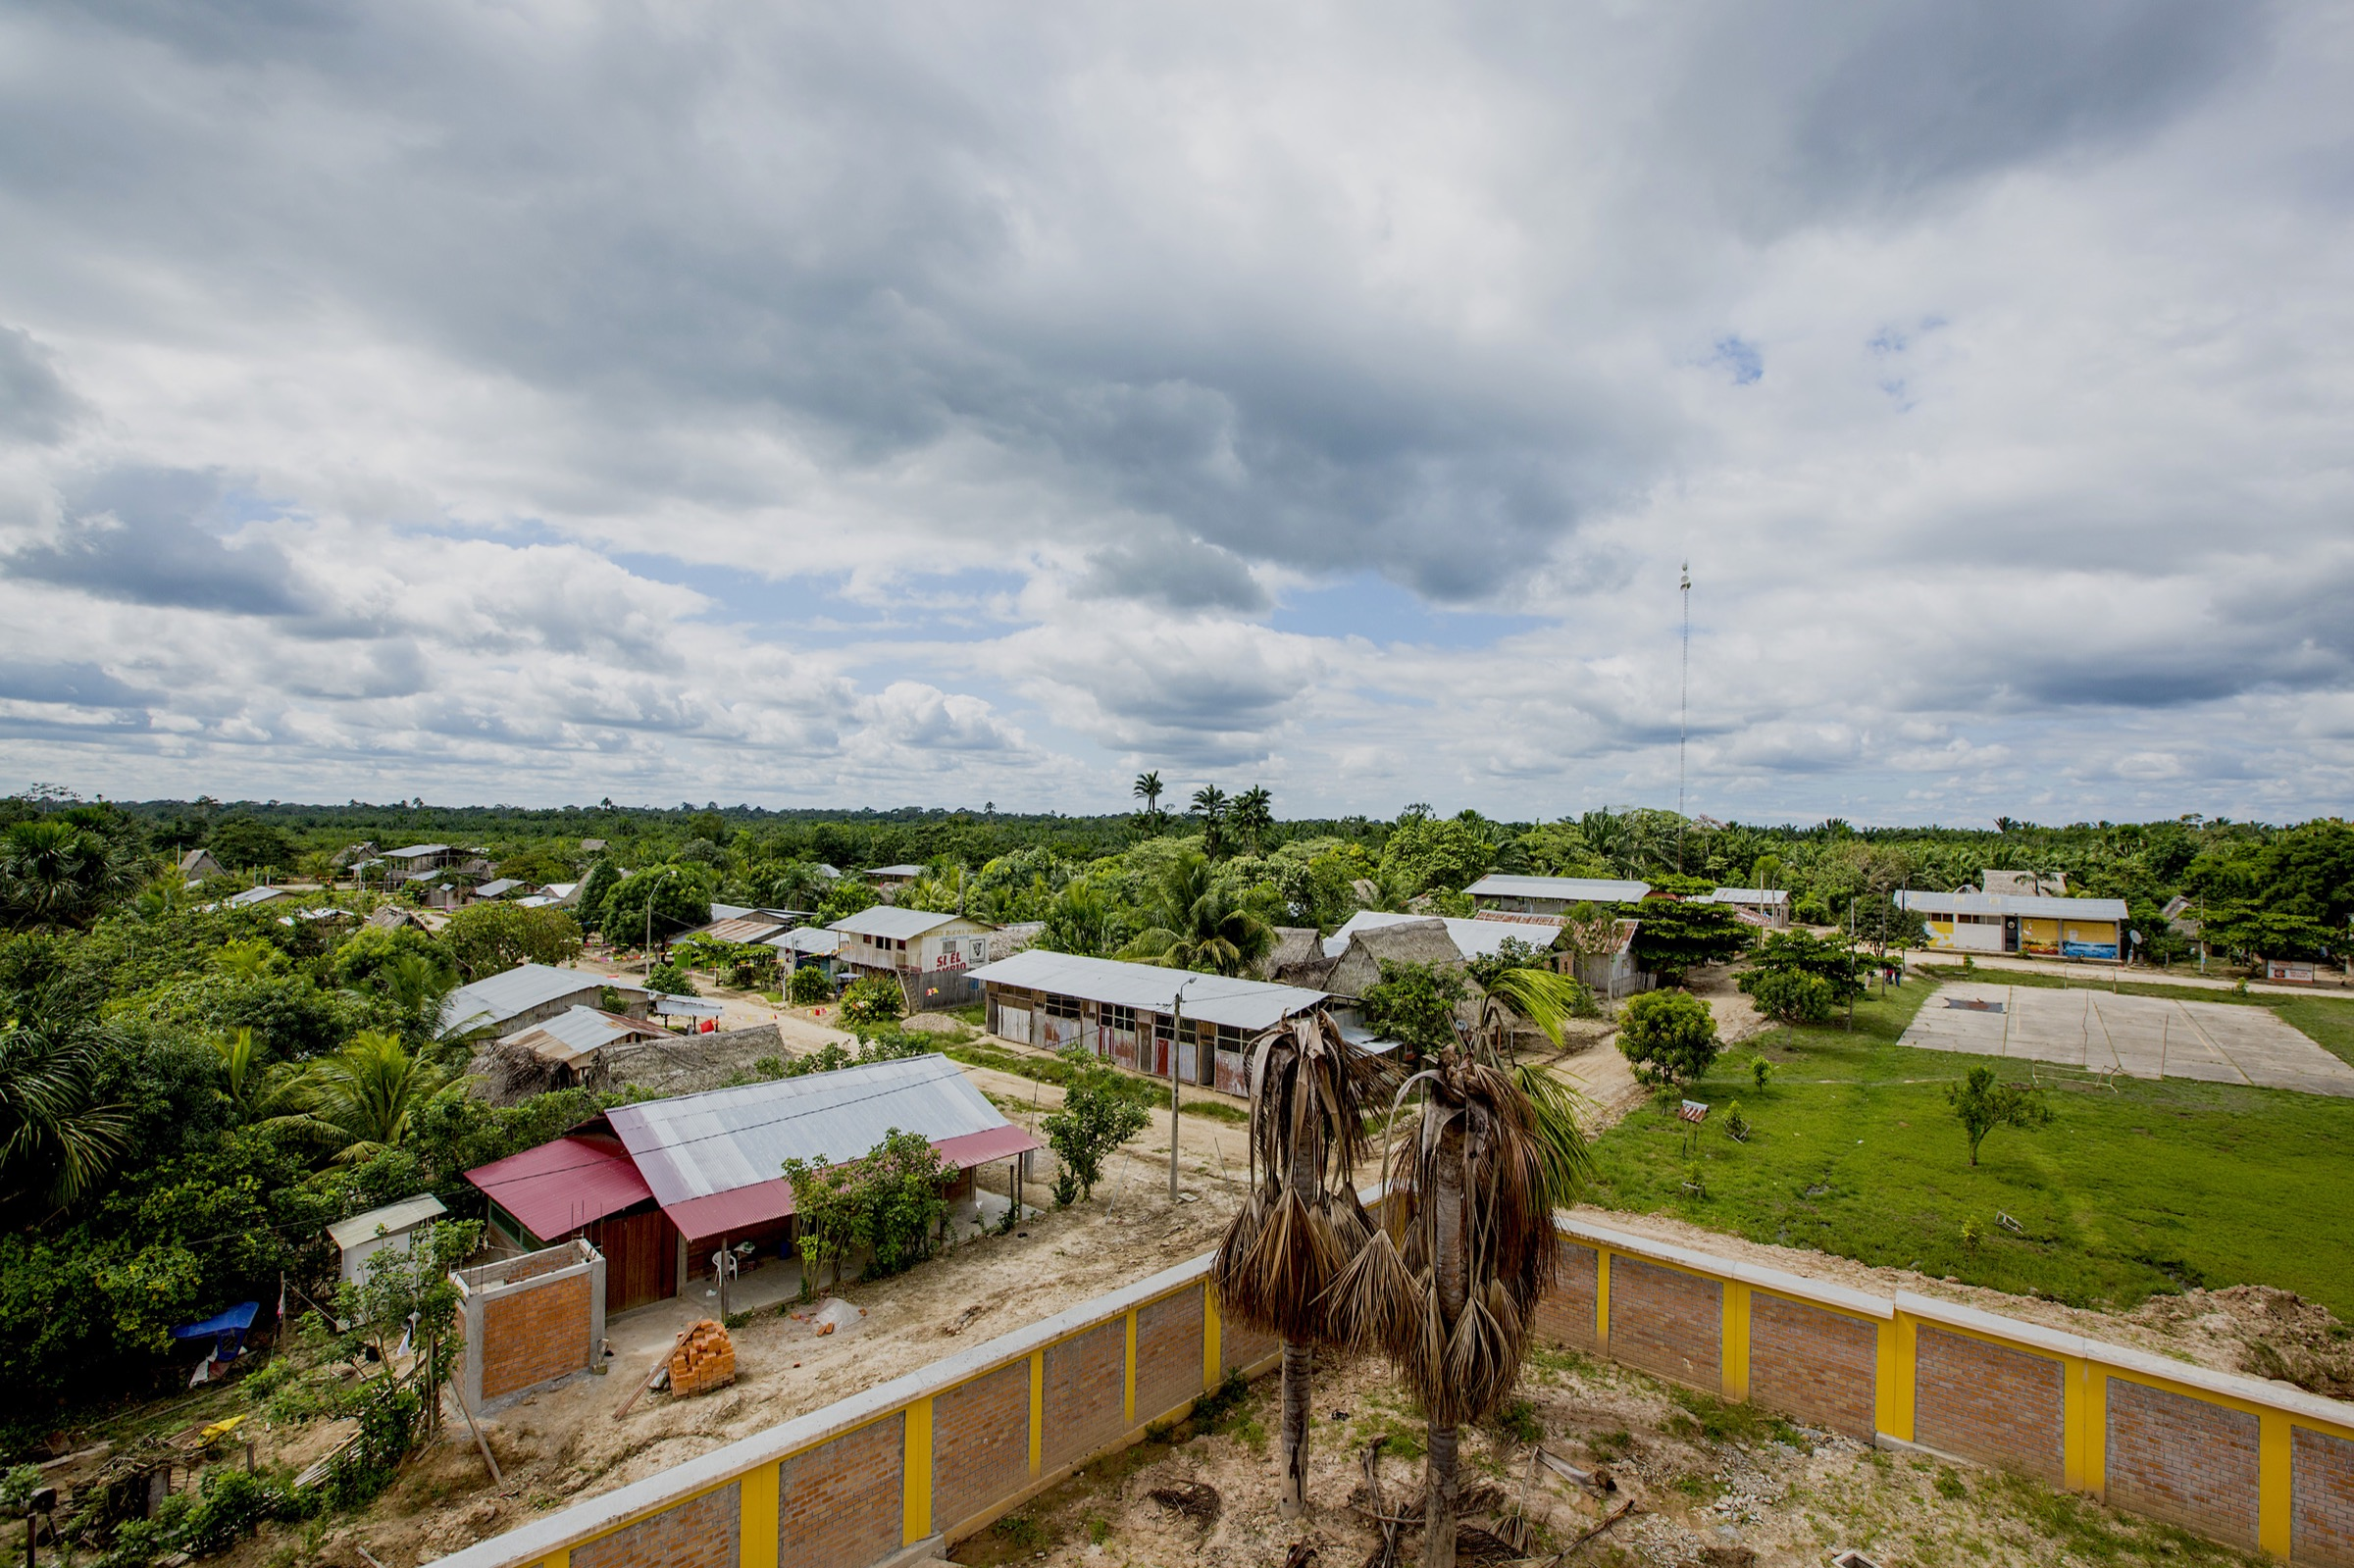 The community of Pueblo Libre depends on palm oil production, but many residents still rely heavily on the native forest plants and animals for sustenance and livelihoods.